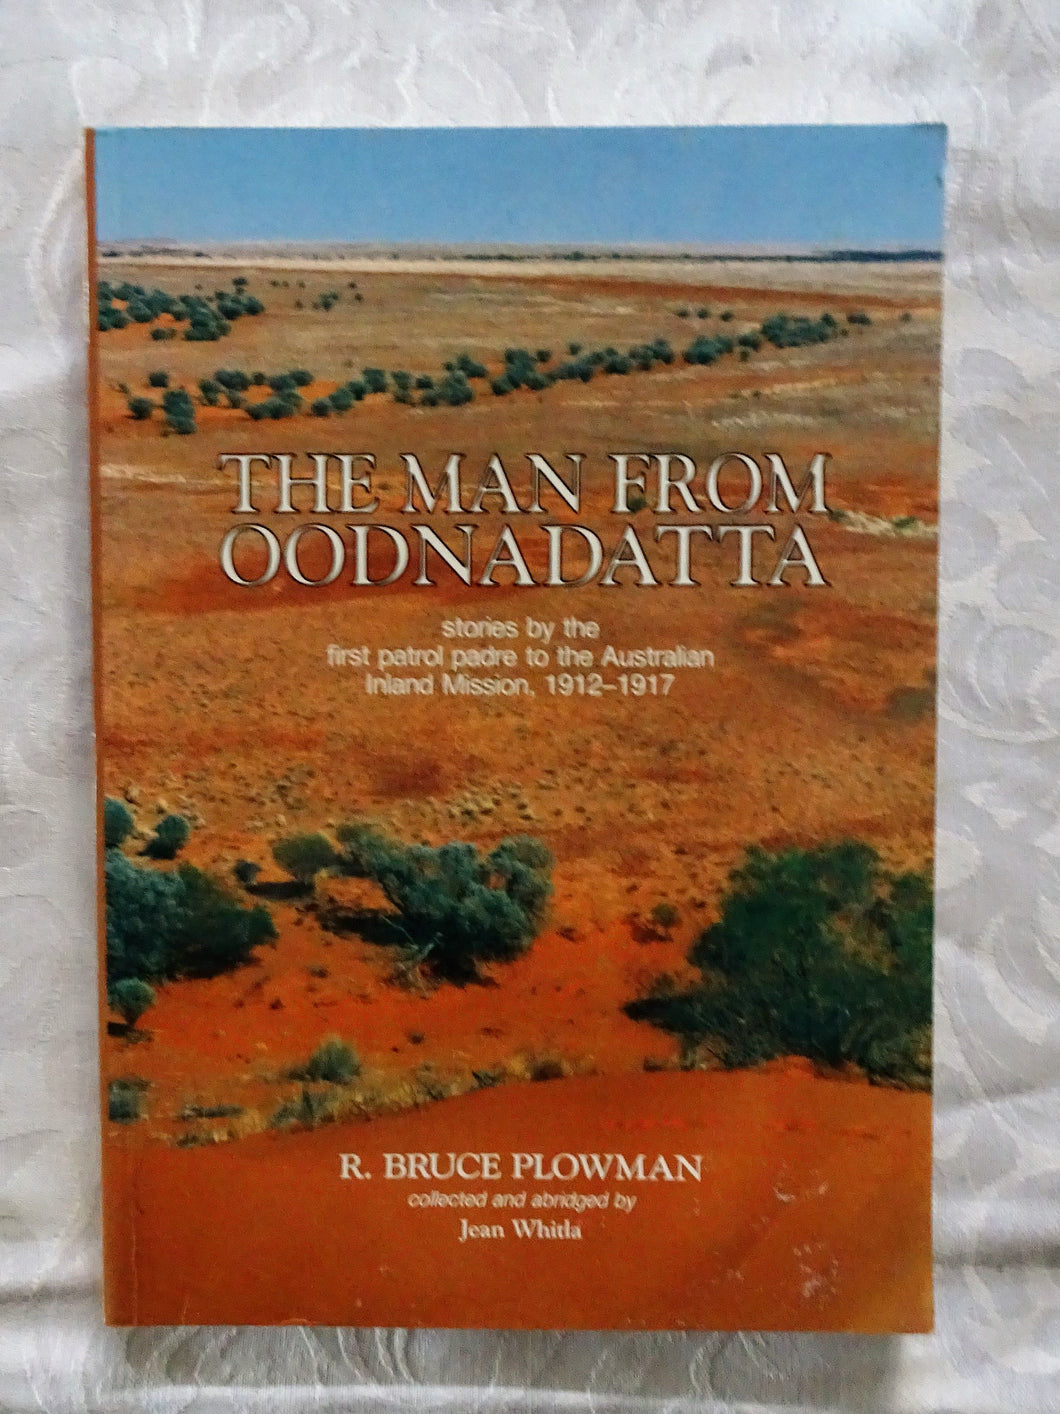 The Man From Oodnadatta by R. Bruce Plowman